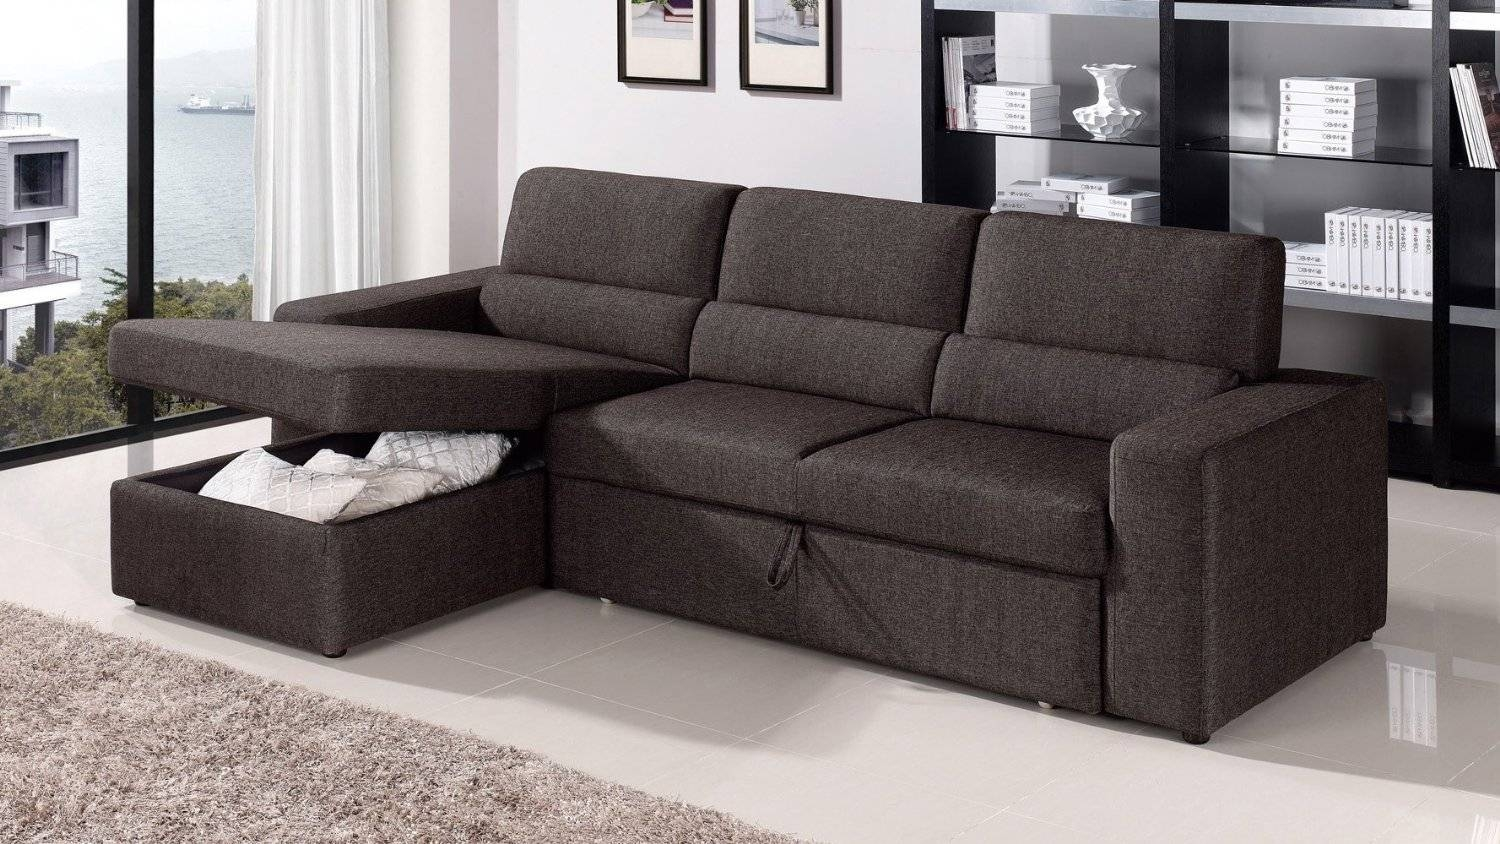 Sofa Sleeper With Chaise Lounge – Ansugallery Regarding Sofa Beds With Chaise Lounge (View 12 of 15)